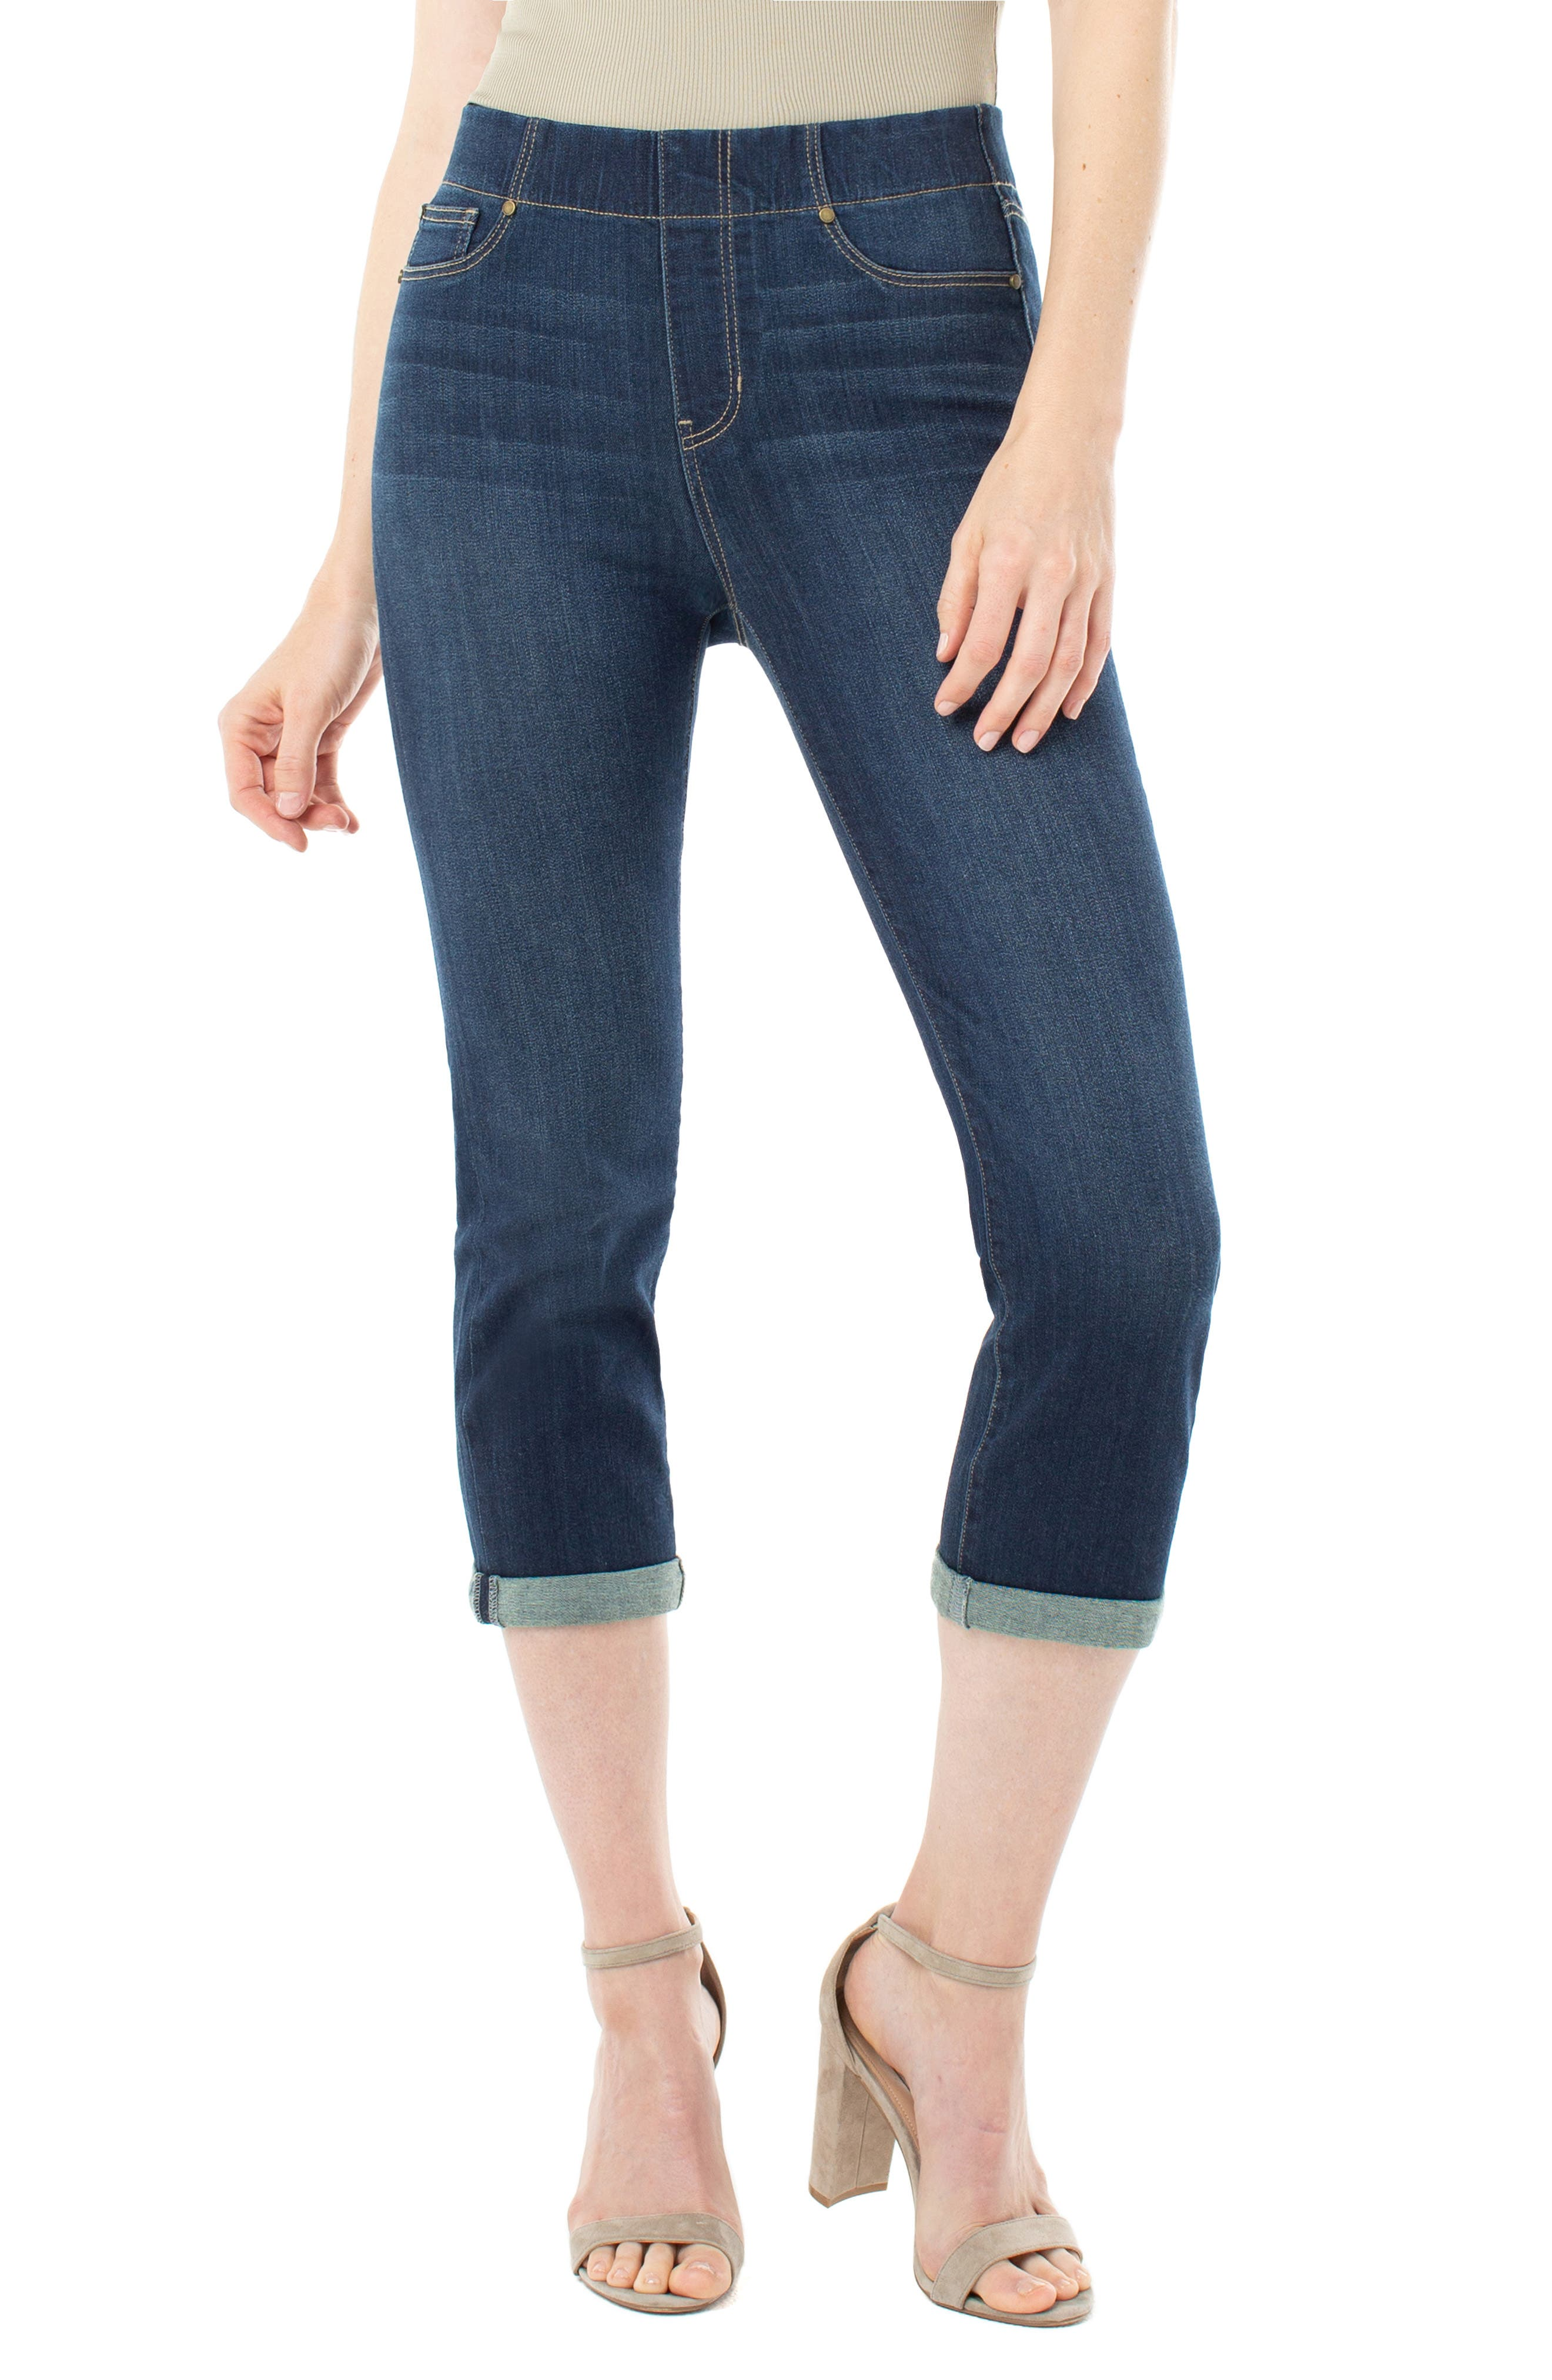 Women's Liverpool Jeans Company Chloe Roll Cuff Capri Denim Leggings,  6 - Blue